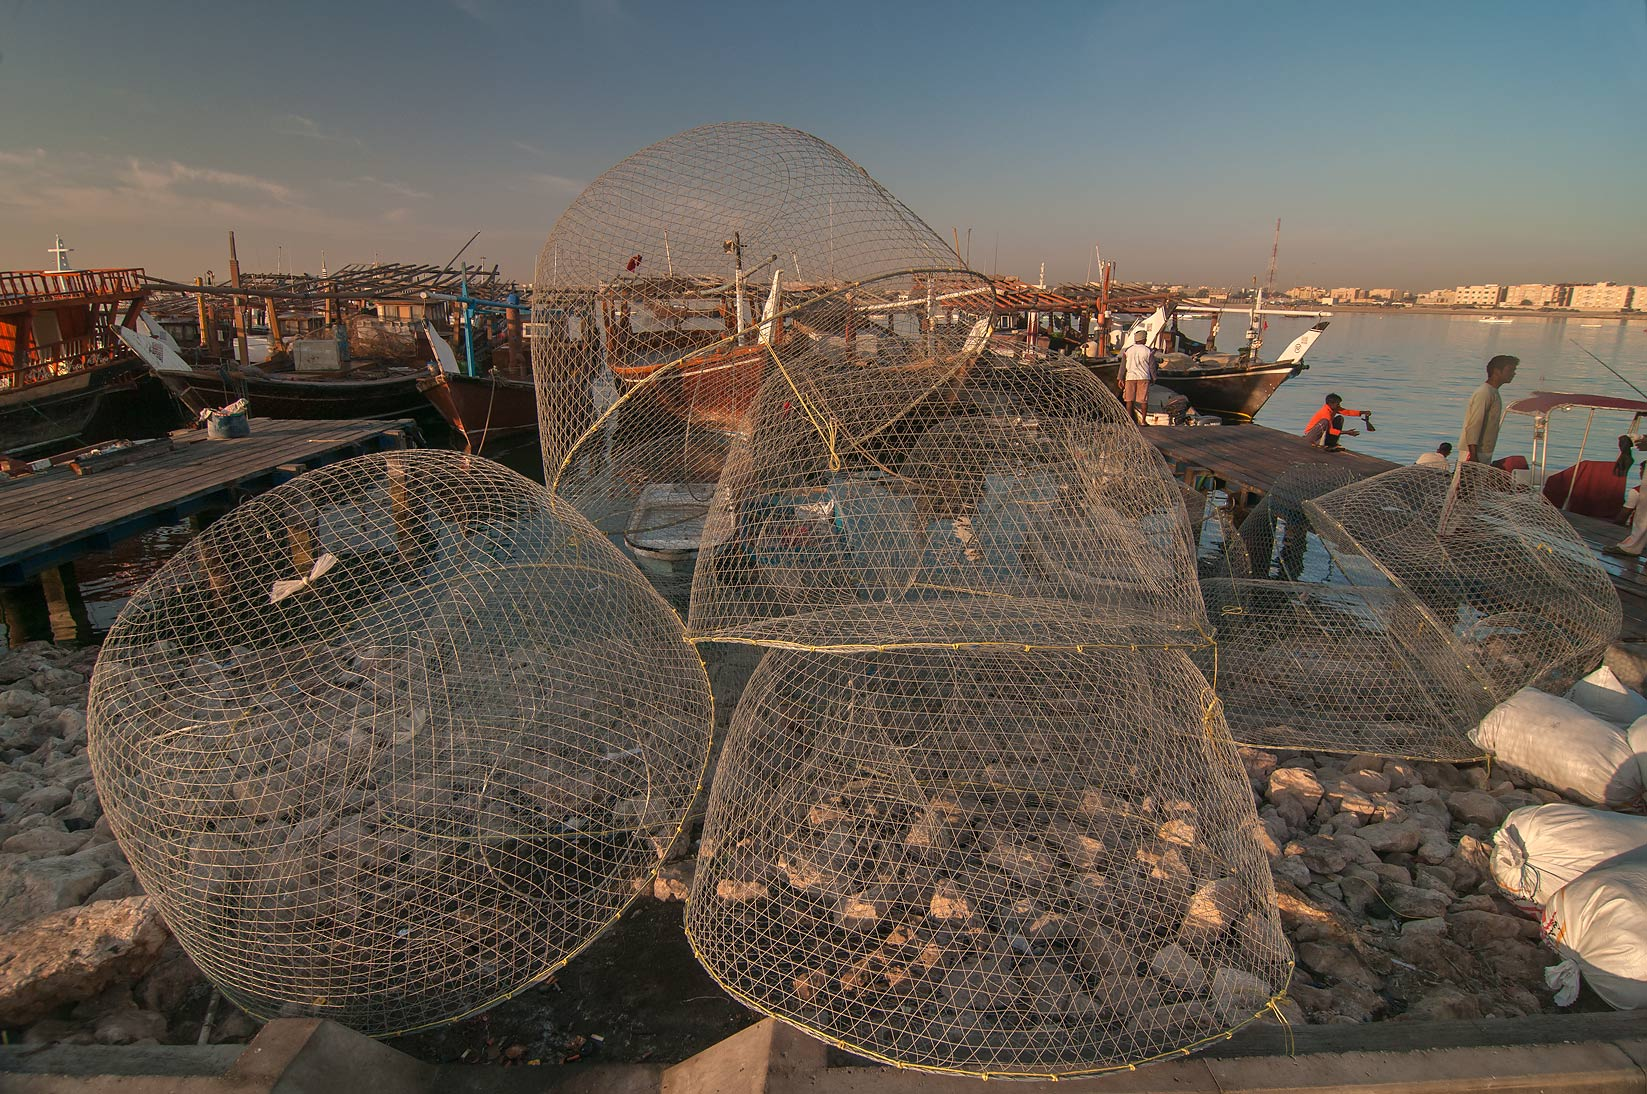 Domed wire fish traps (gargoor) and fishing boats in Al Wakra. Qatar